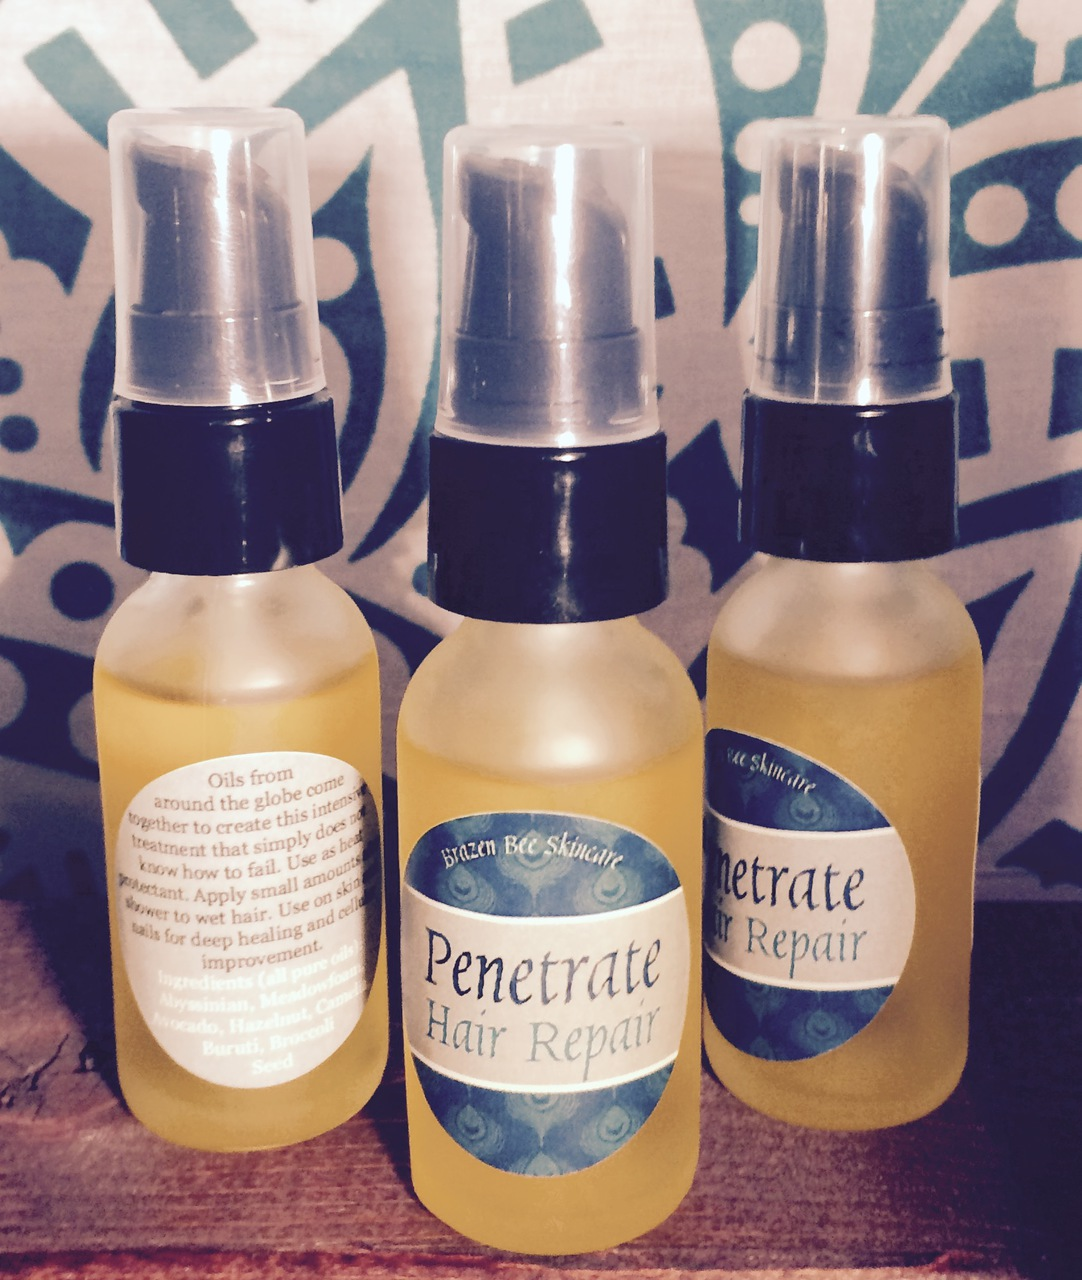 Penetrate Hair Oil: Hair Repair with natural oils. High in vitamins and fatty acids right for recovering shine, protecting from heat, and promoting growth.